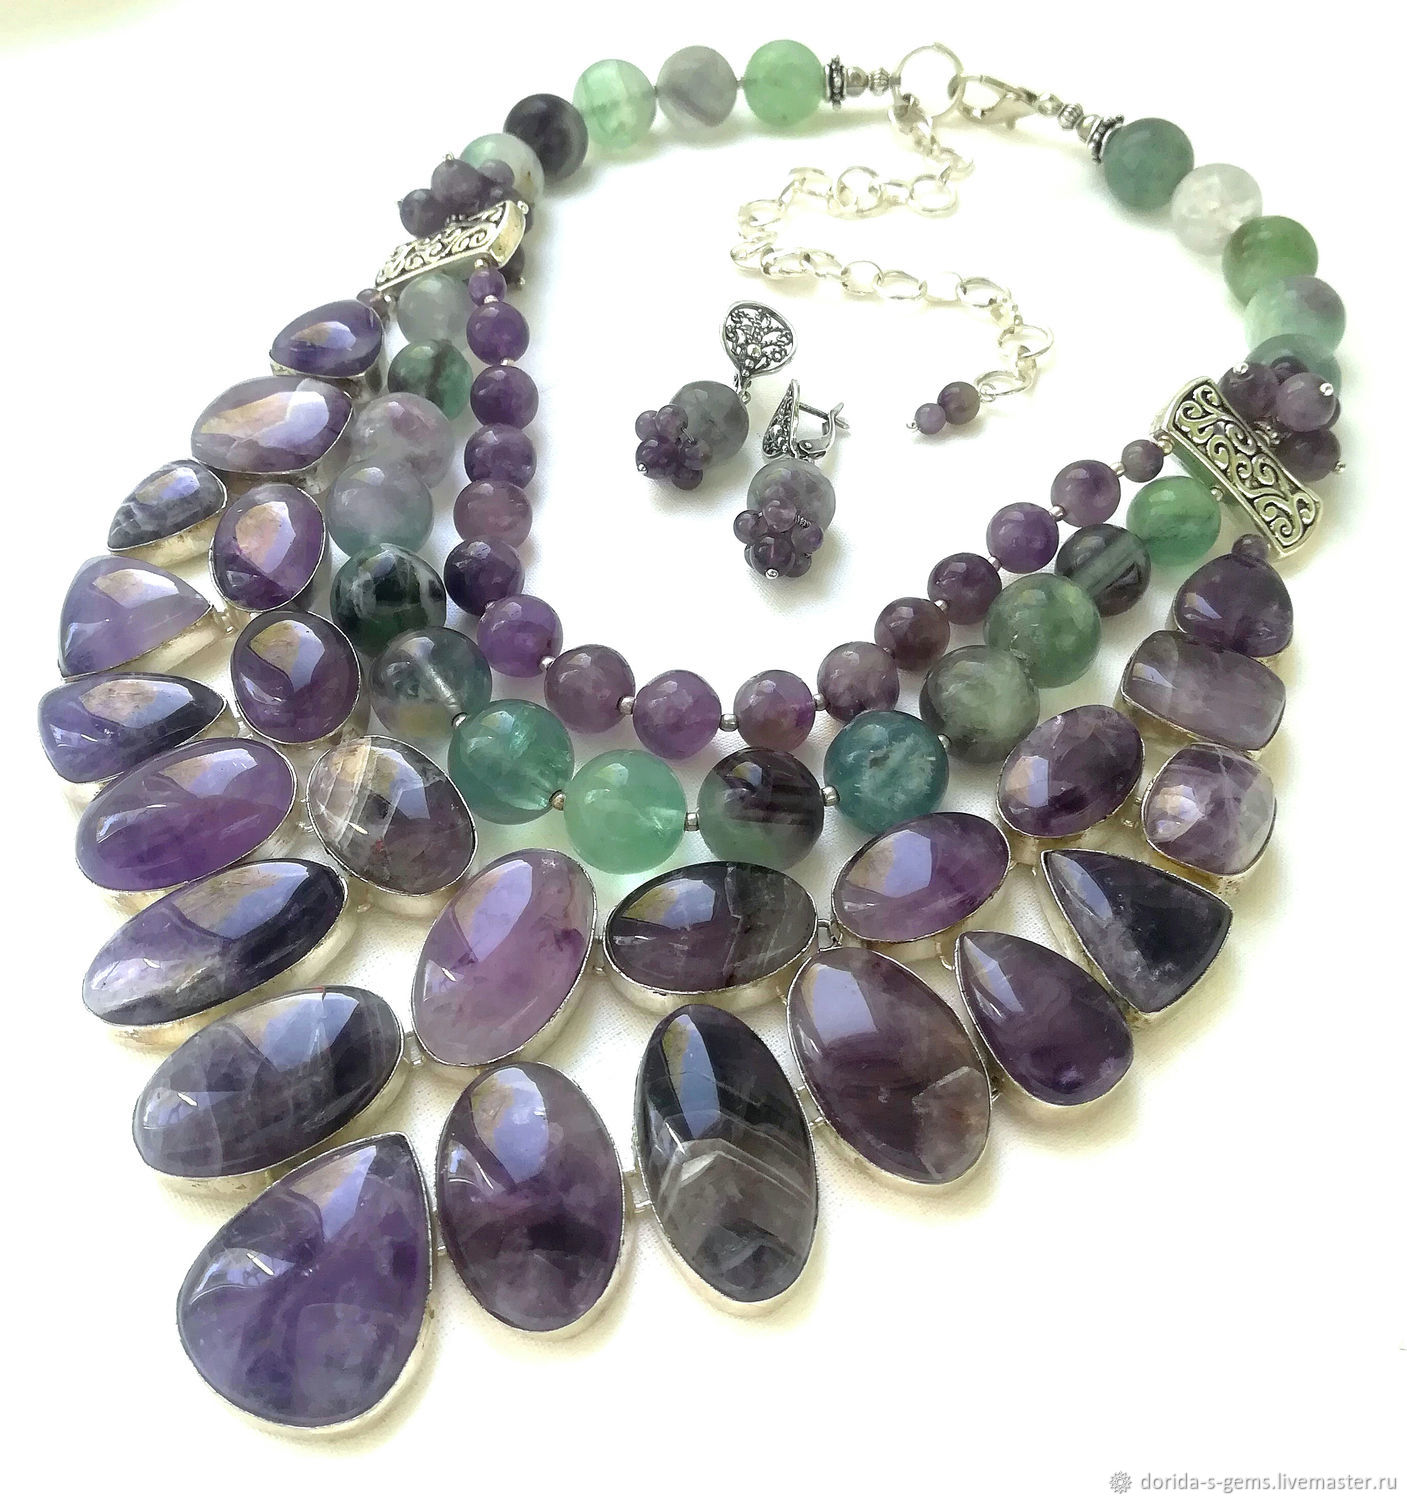 necklace, designer necklace, necklace, necklace on a every day necklace out, the necklace amethyst, necklace amethyst, necklace with fluorite, necklace for gift, beads of fluorite, beads, stones, and